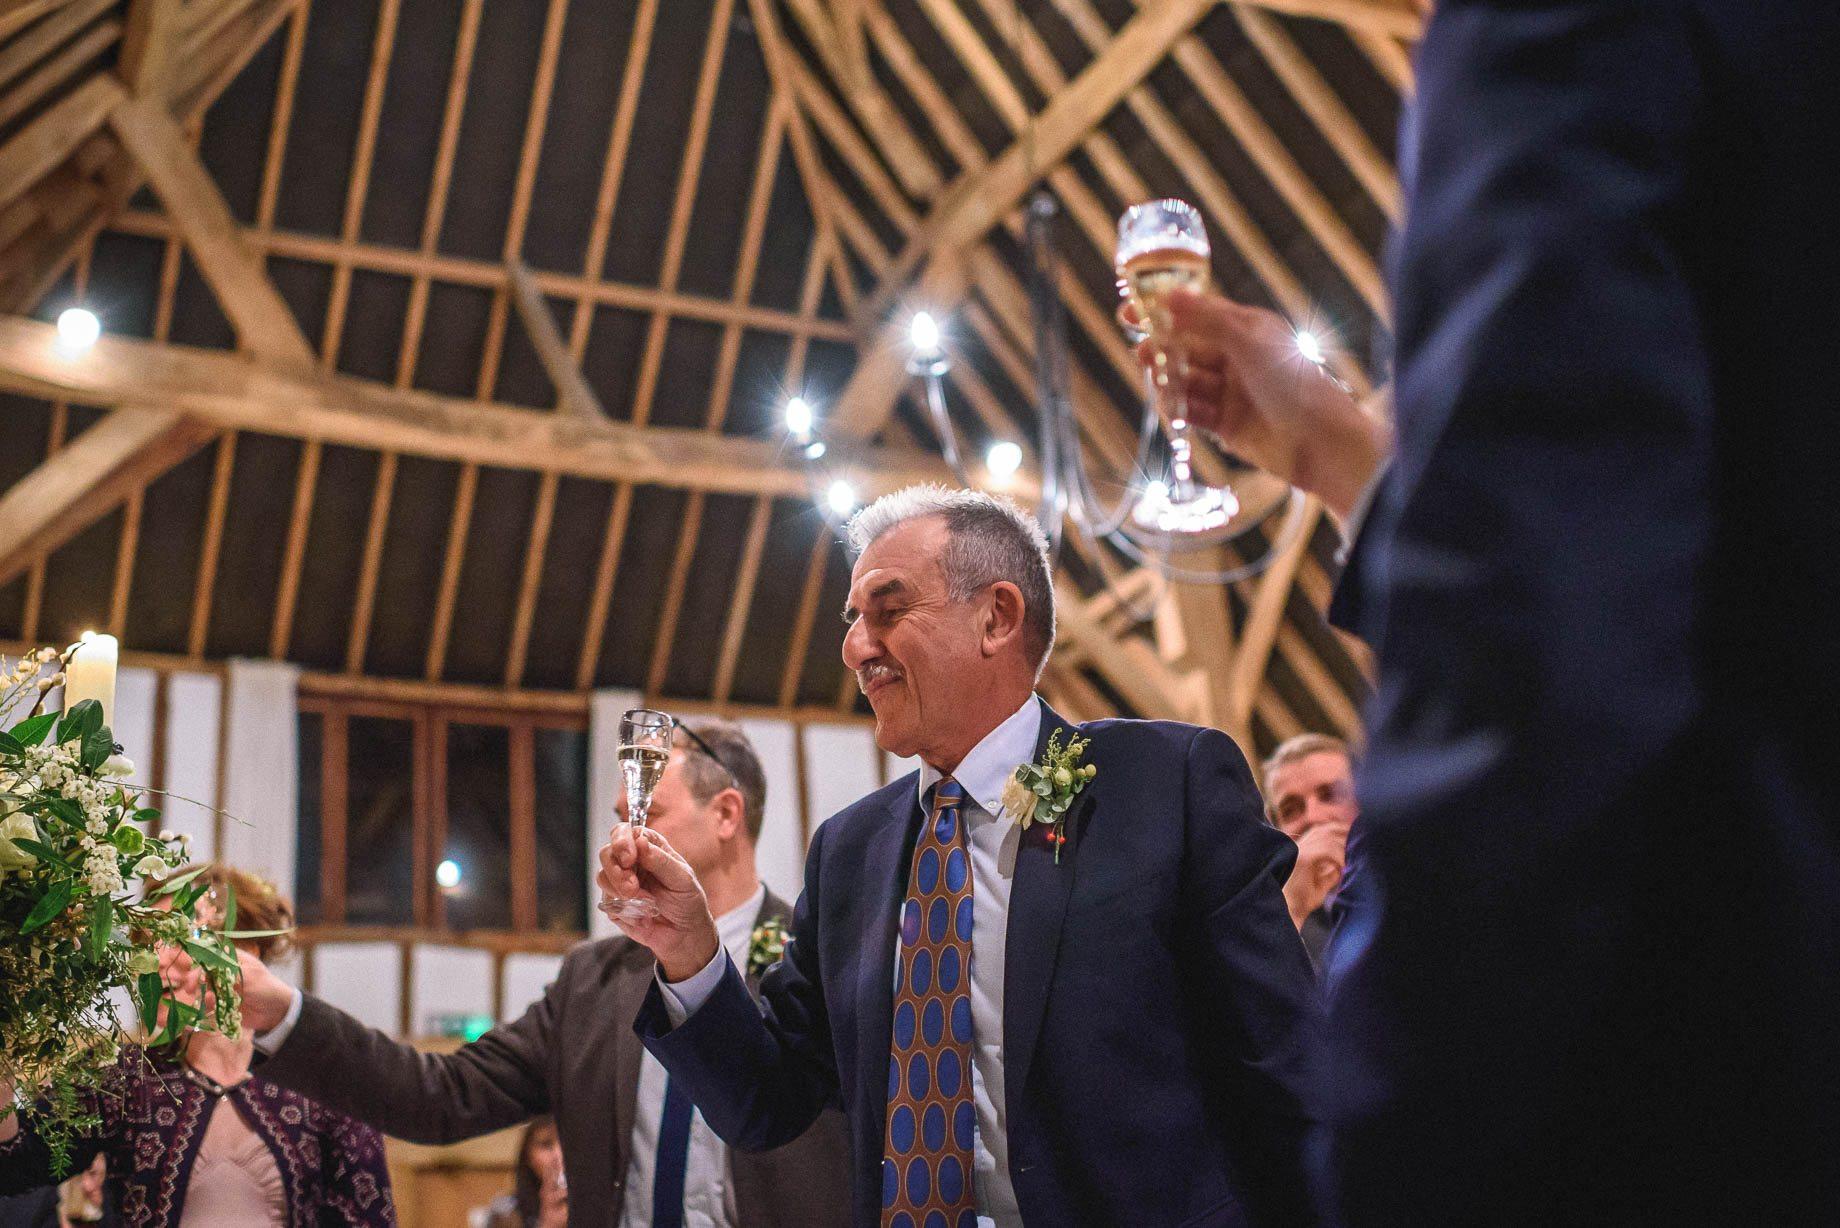 Clock Barn Wedding Photography - Eva and Ollie (160 of 170)